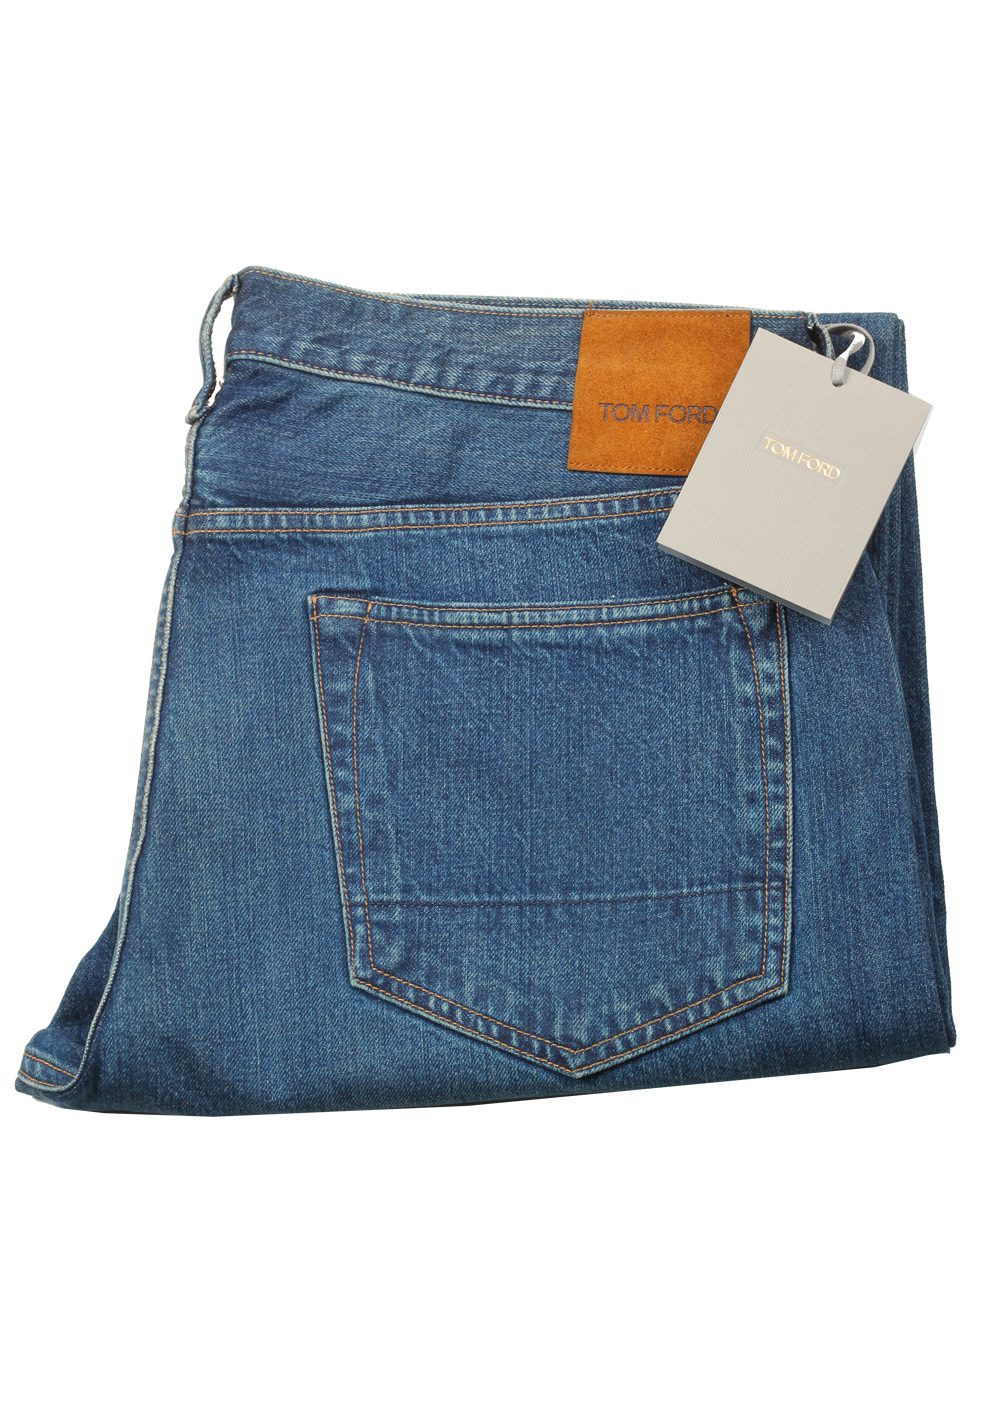 TOM FORD Blue Straight Jeans TFD002 Size 52 / 36 U.S. | Costume Limité